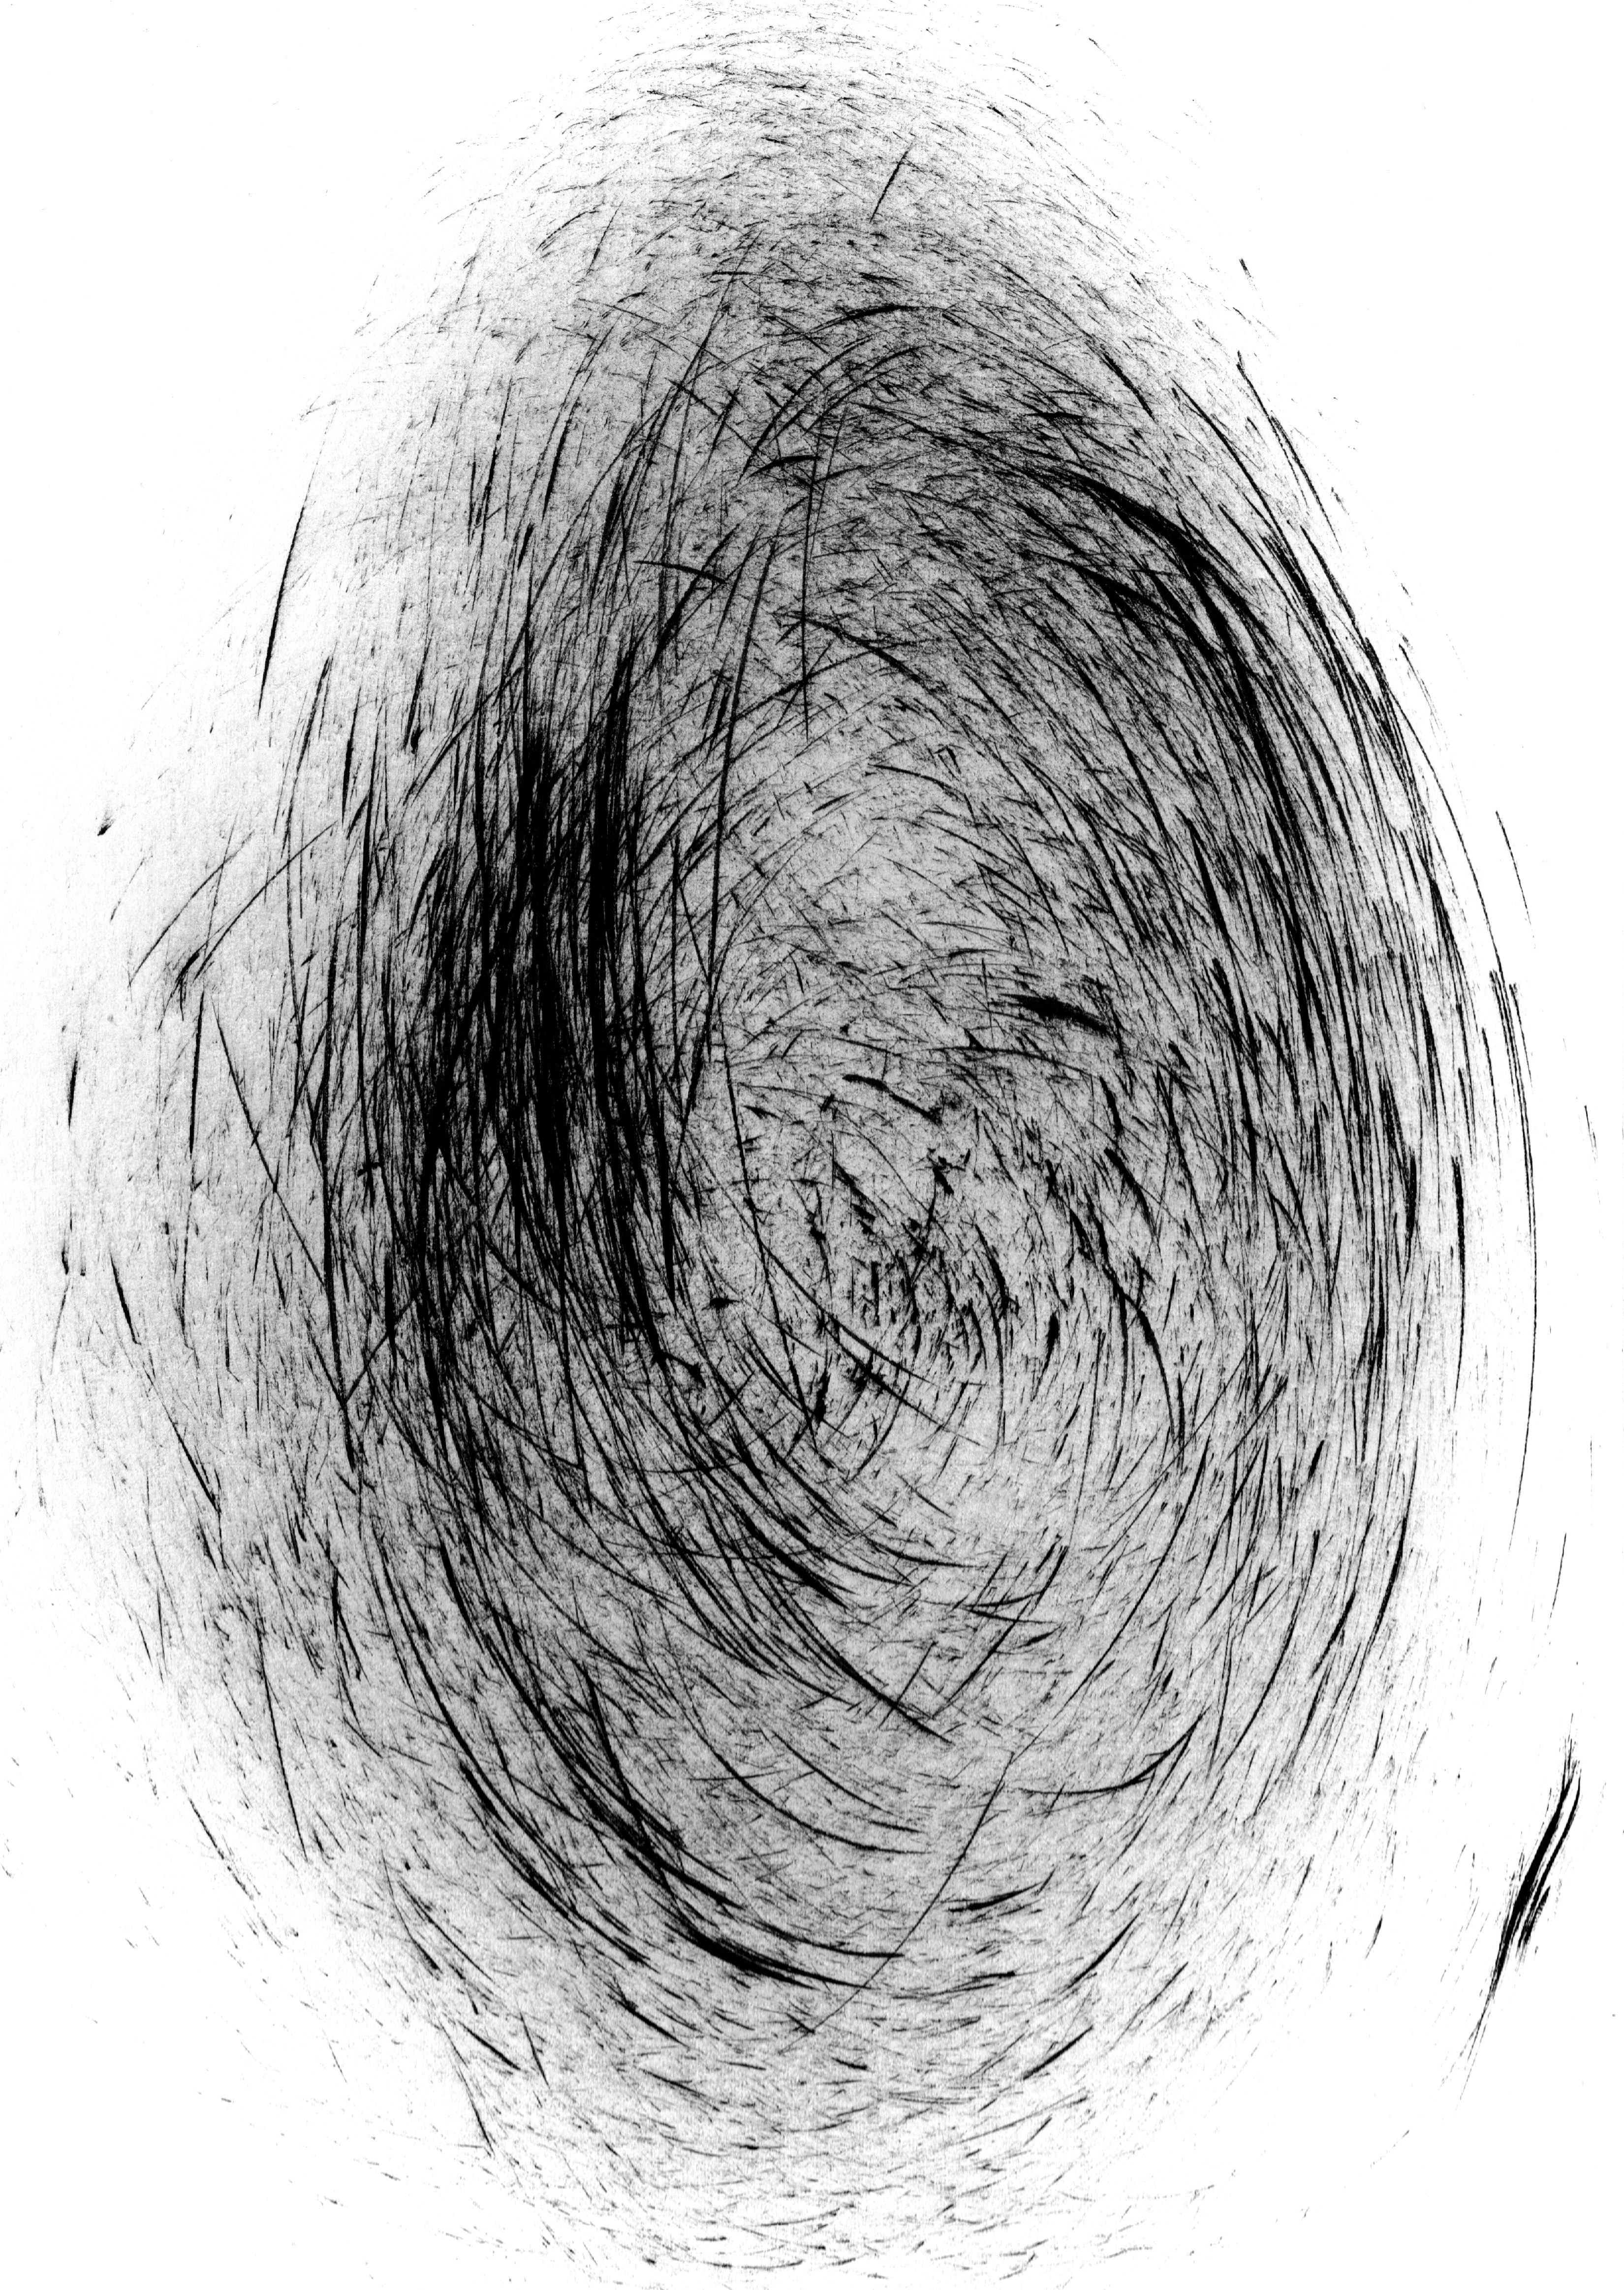 Scratched Effects Black and White Texture (JPG) | OnlyGFX.com